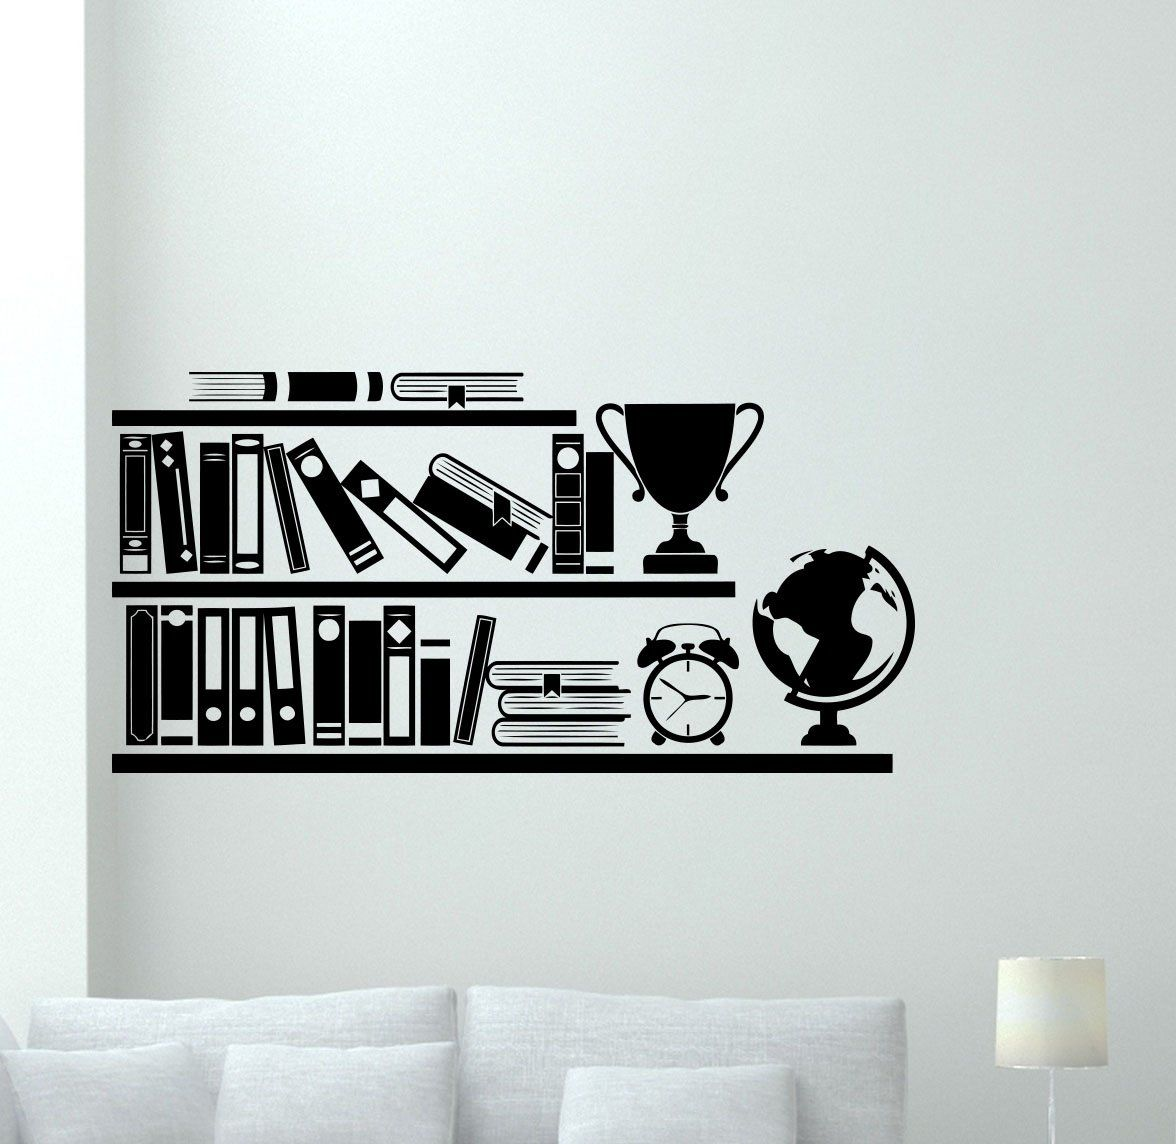 Books On Bookshelf Wall Decal School Library Home Office Study - Printing vinyl decals at home